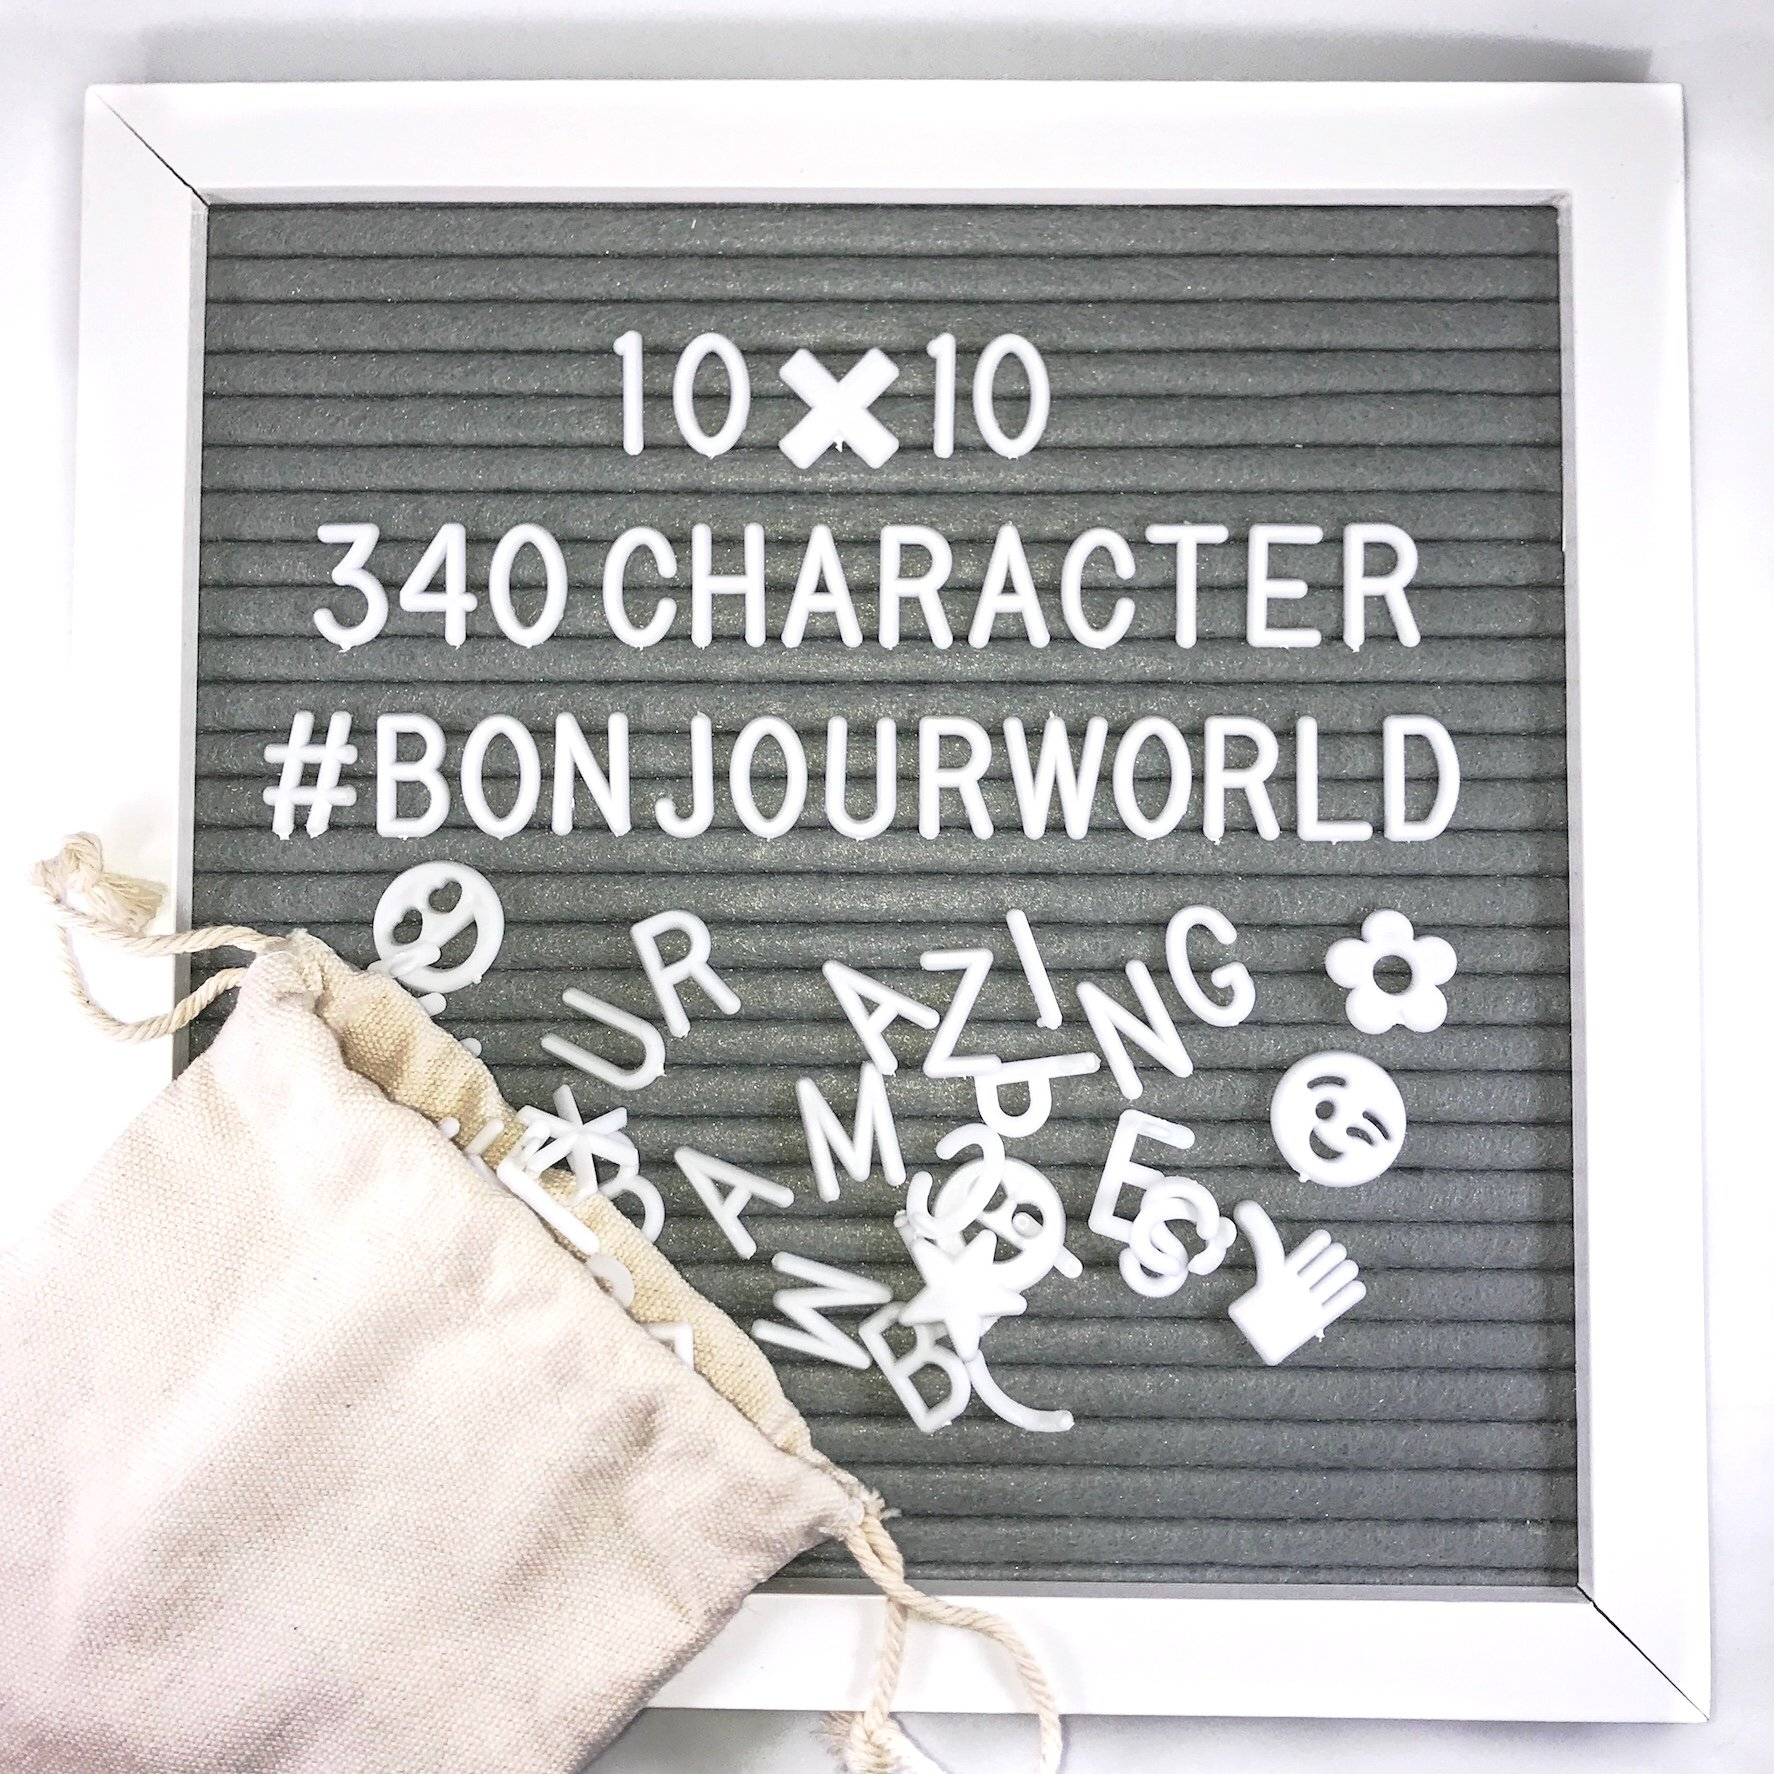 Wooden Letter Board 10''x10'' with 340 Changeable Letters, Symbols, Emojis + Canvas Bag (White)